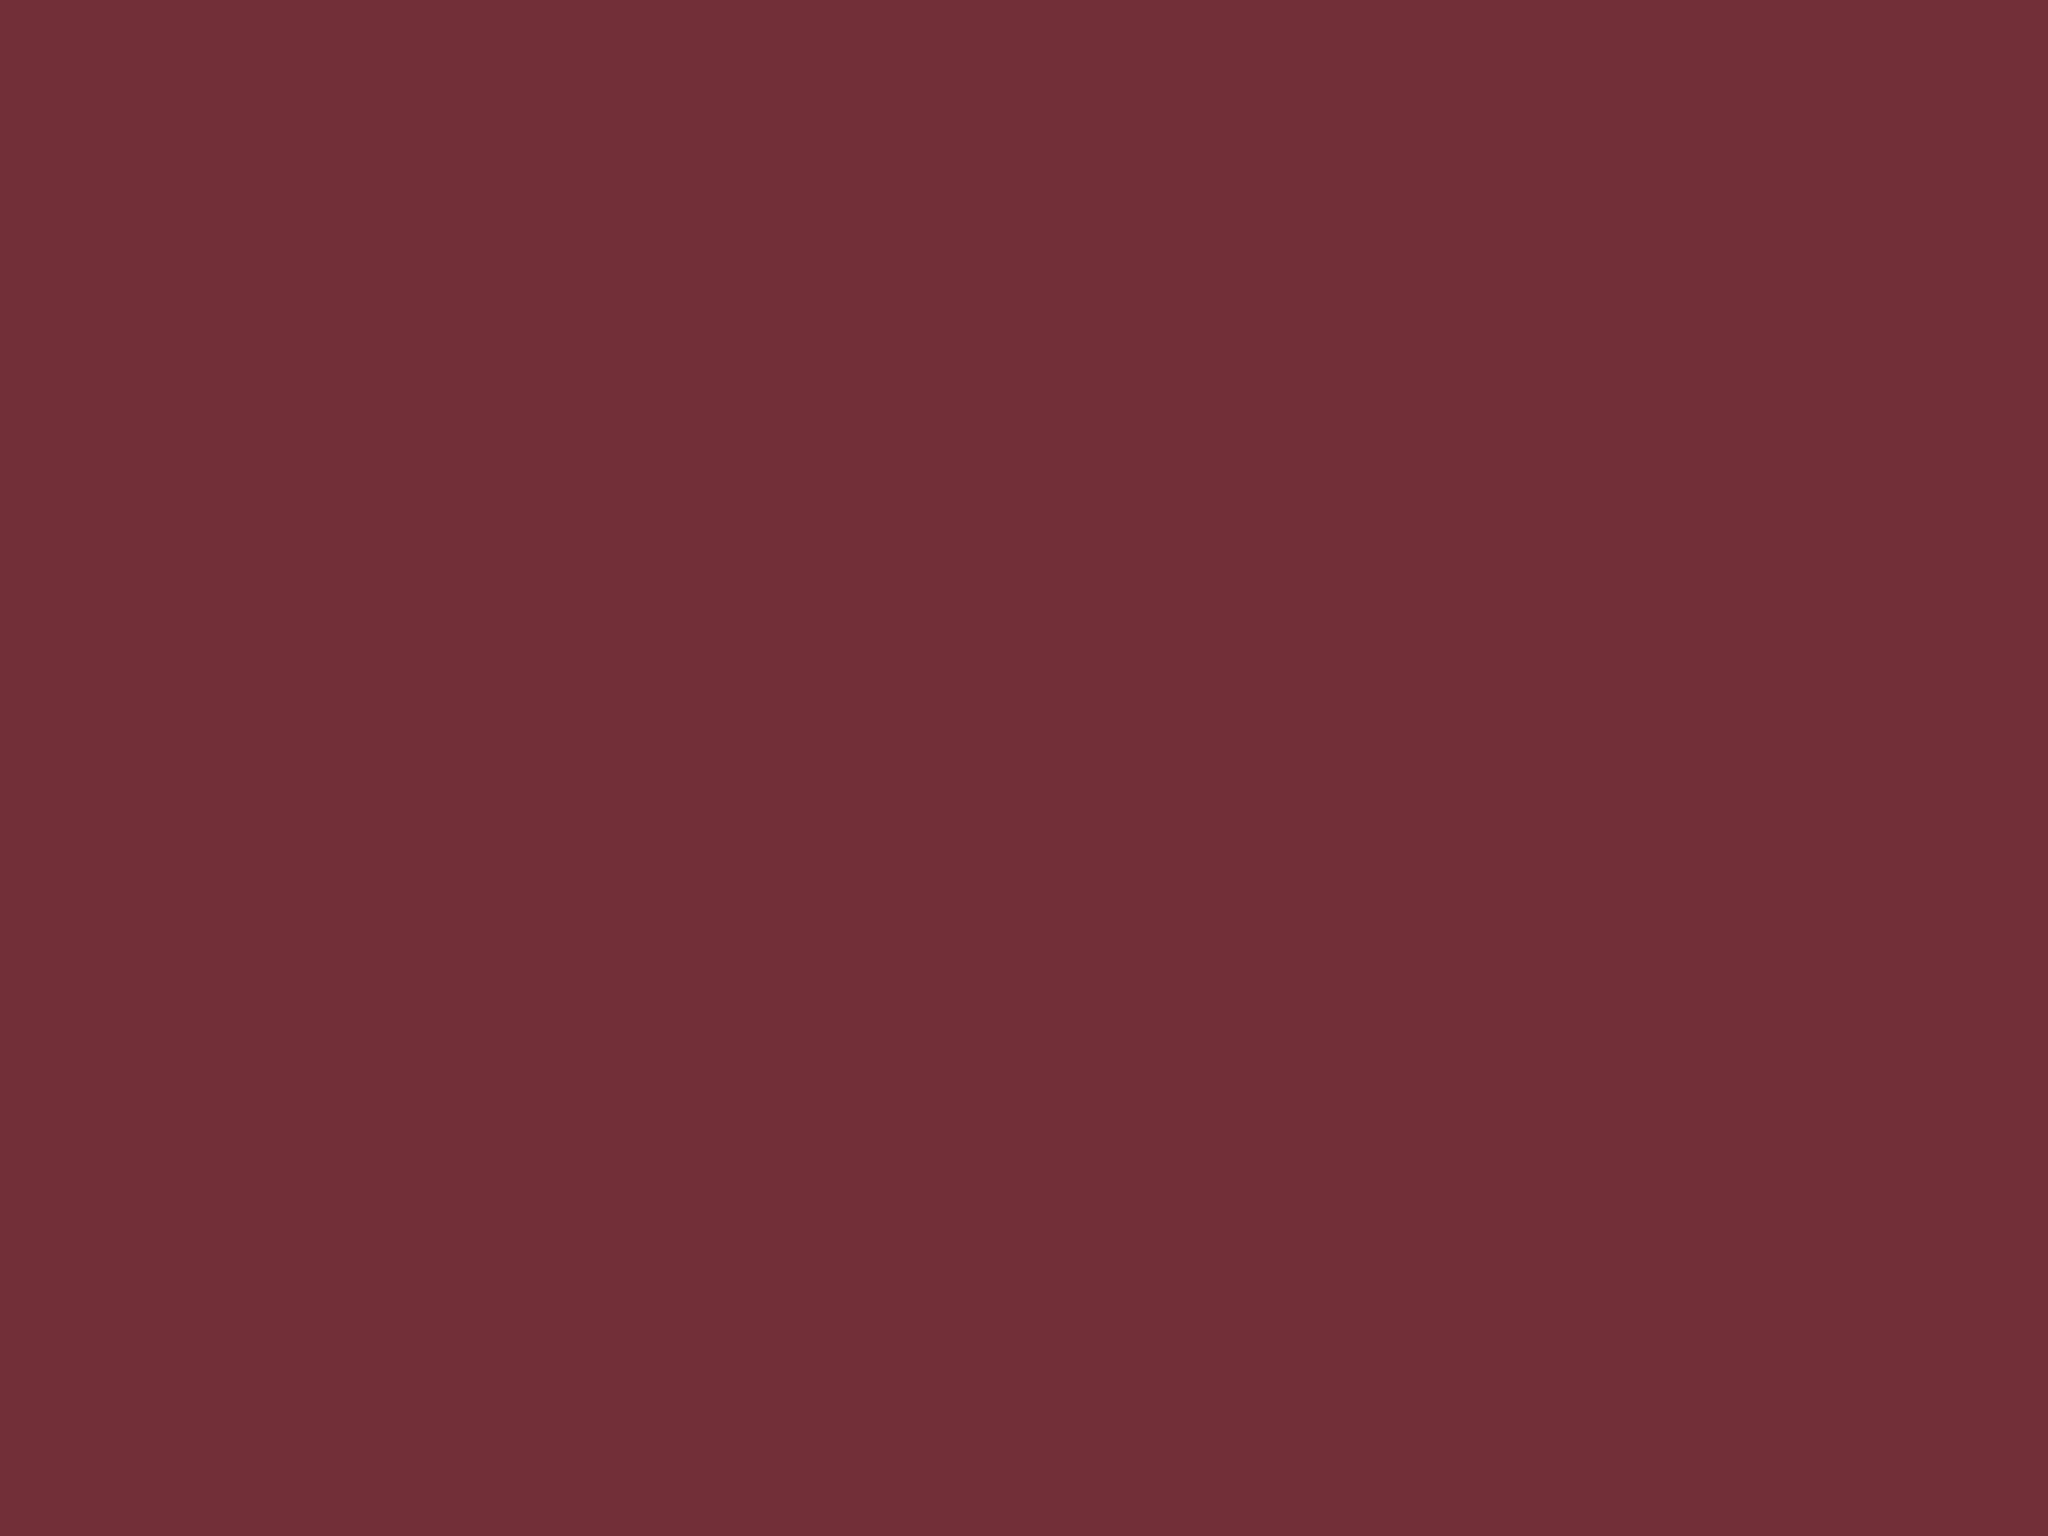 2048x1536 Wine Solid Color Background